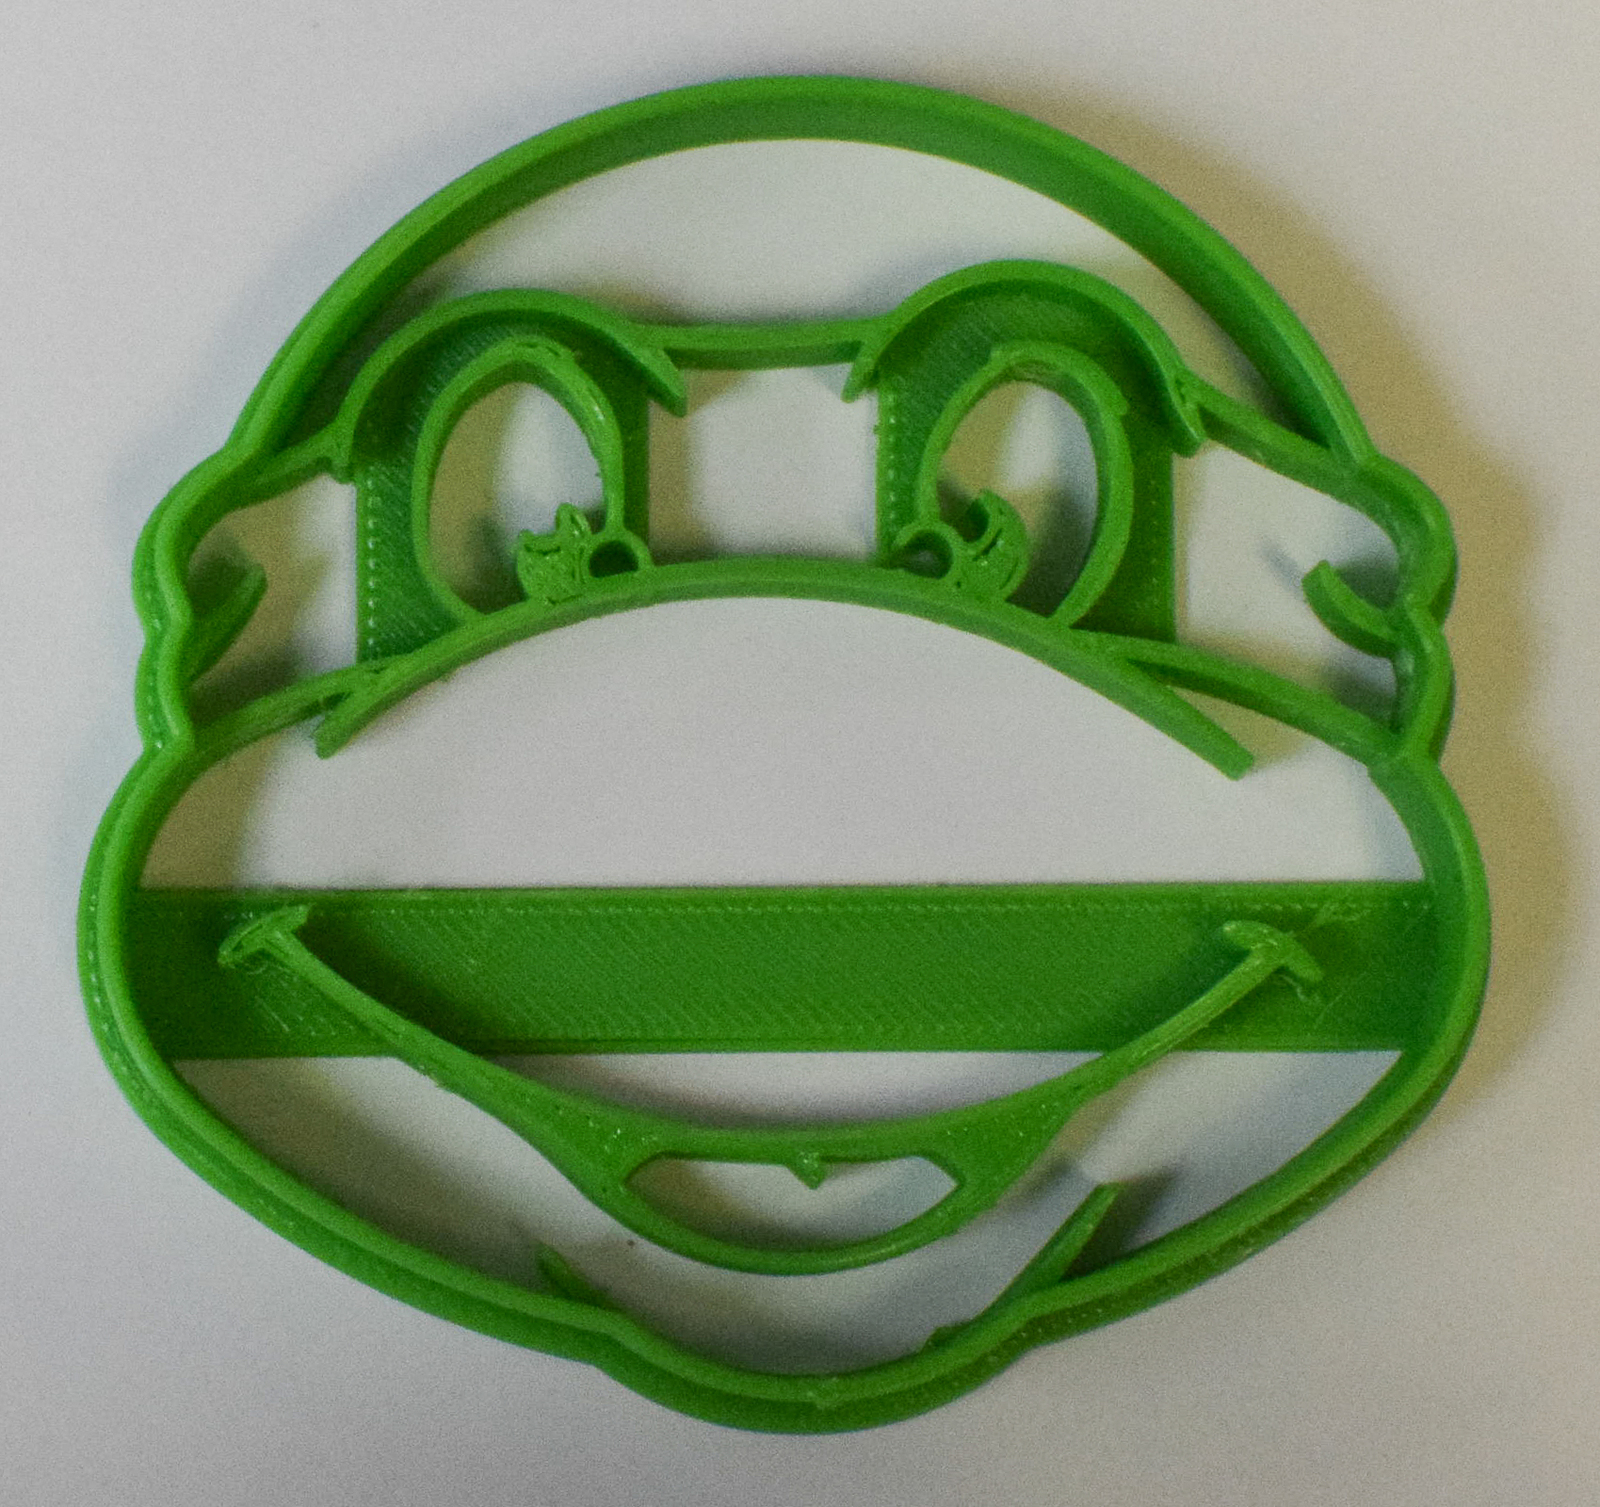 Primary image for TMNT Teenage Mutant Ninja Turtle Characters Cookie Cutter 3D Printed USA PR484